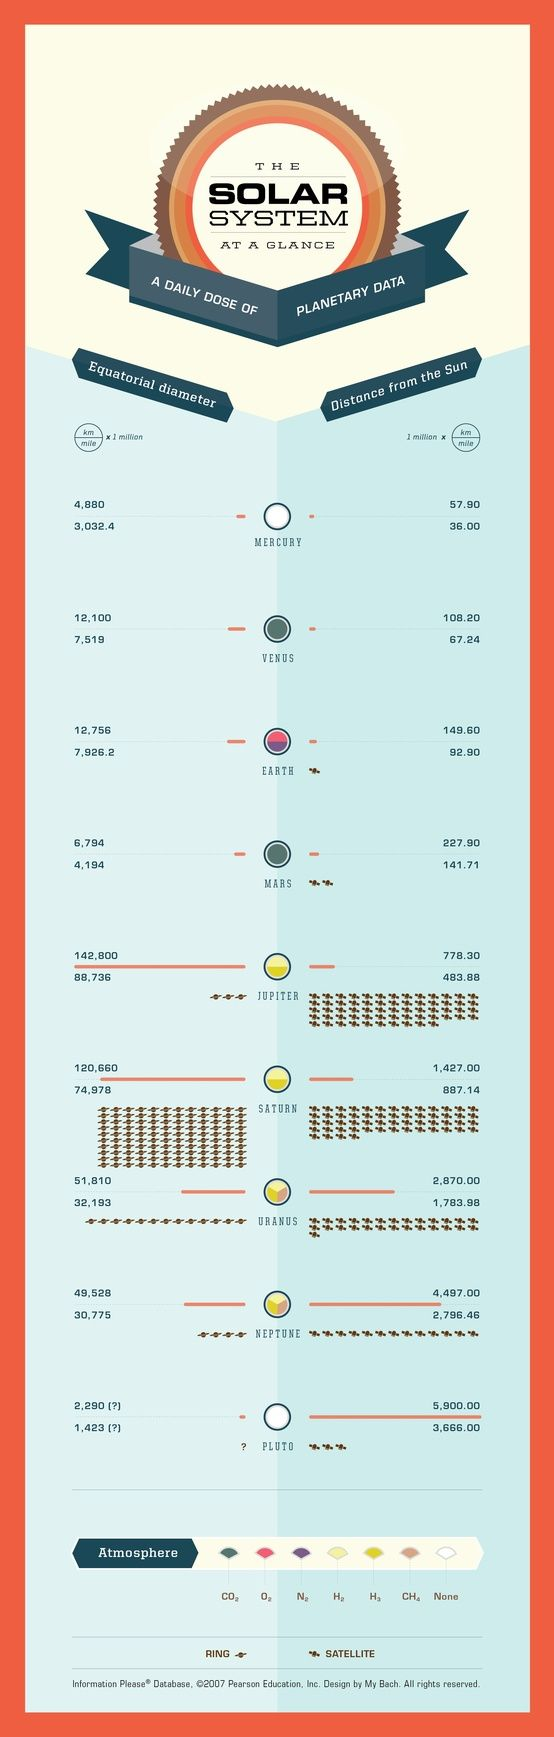 The Solar System at a glance